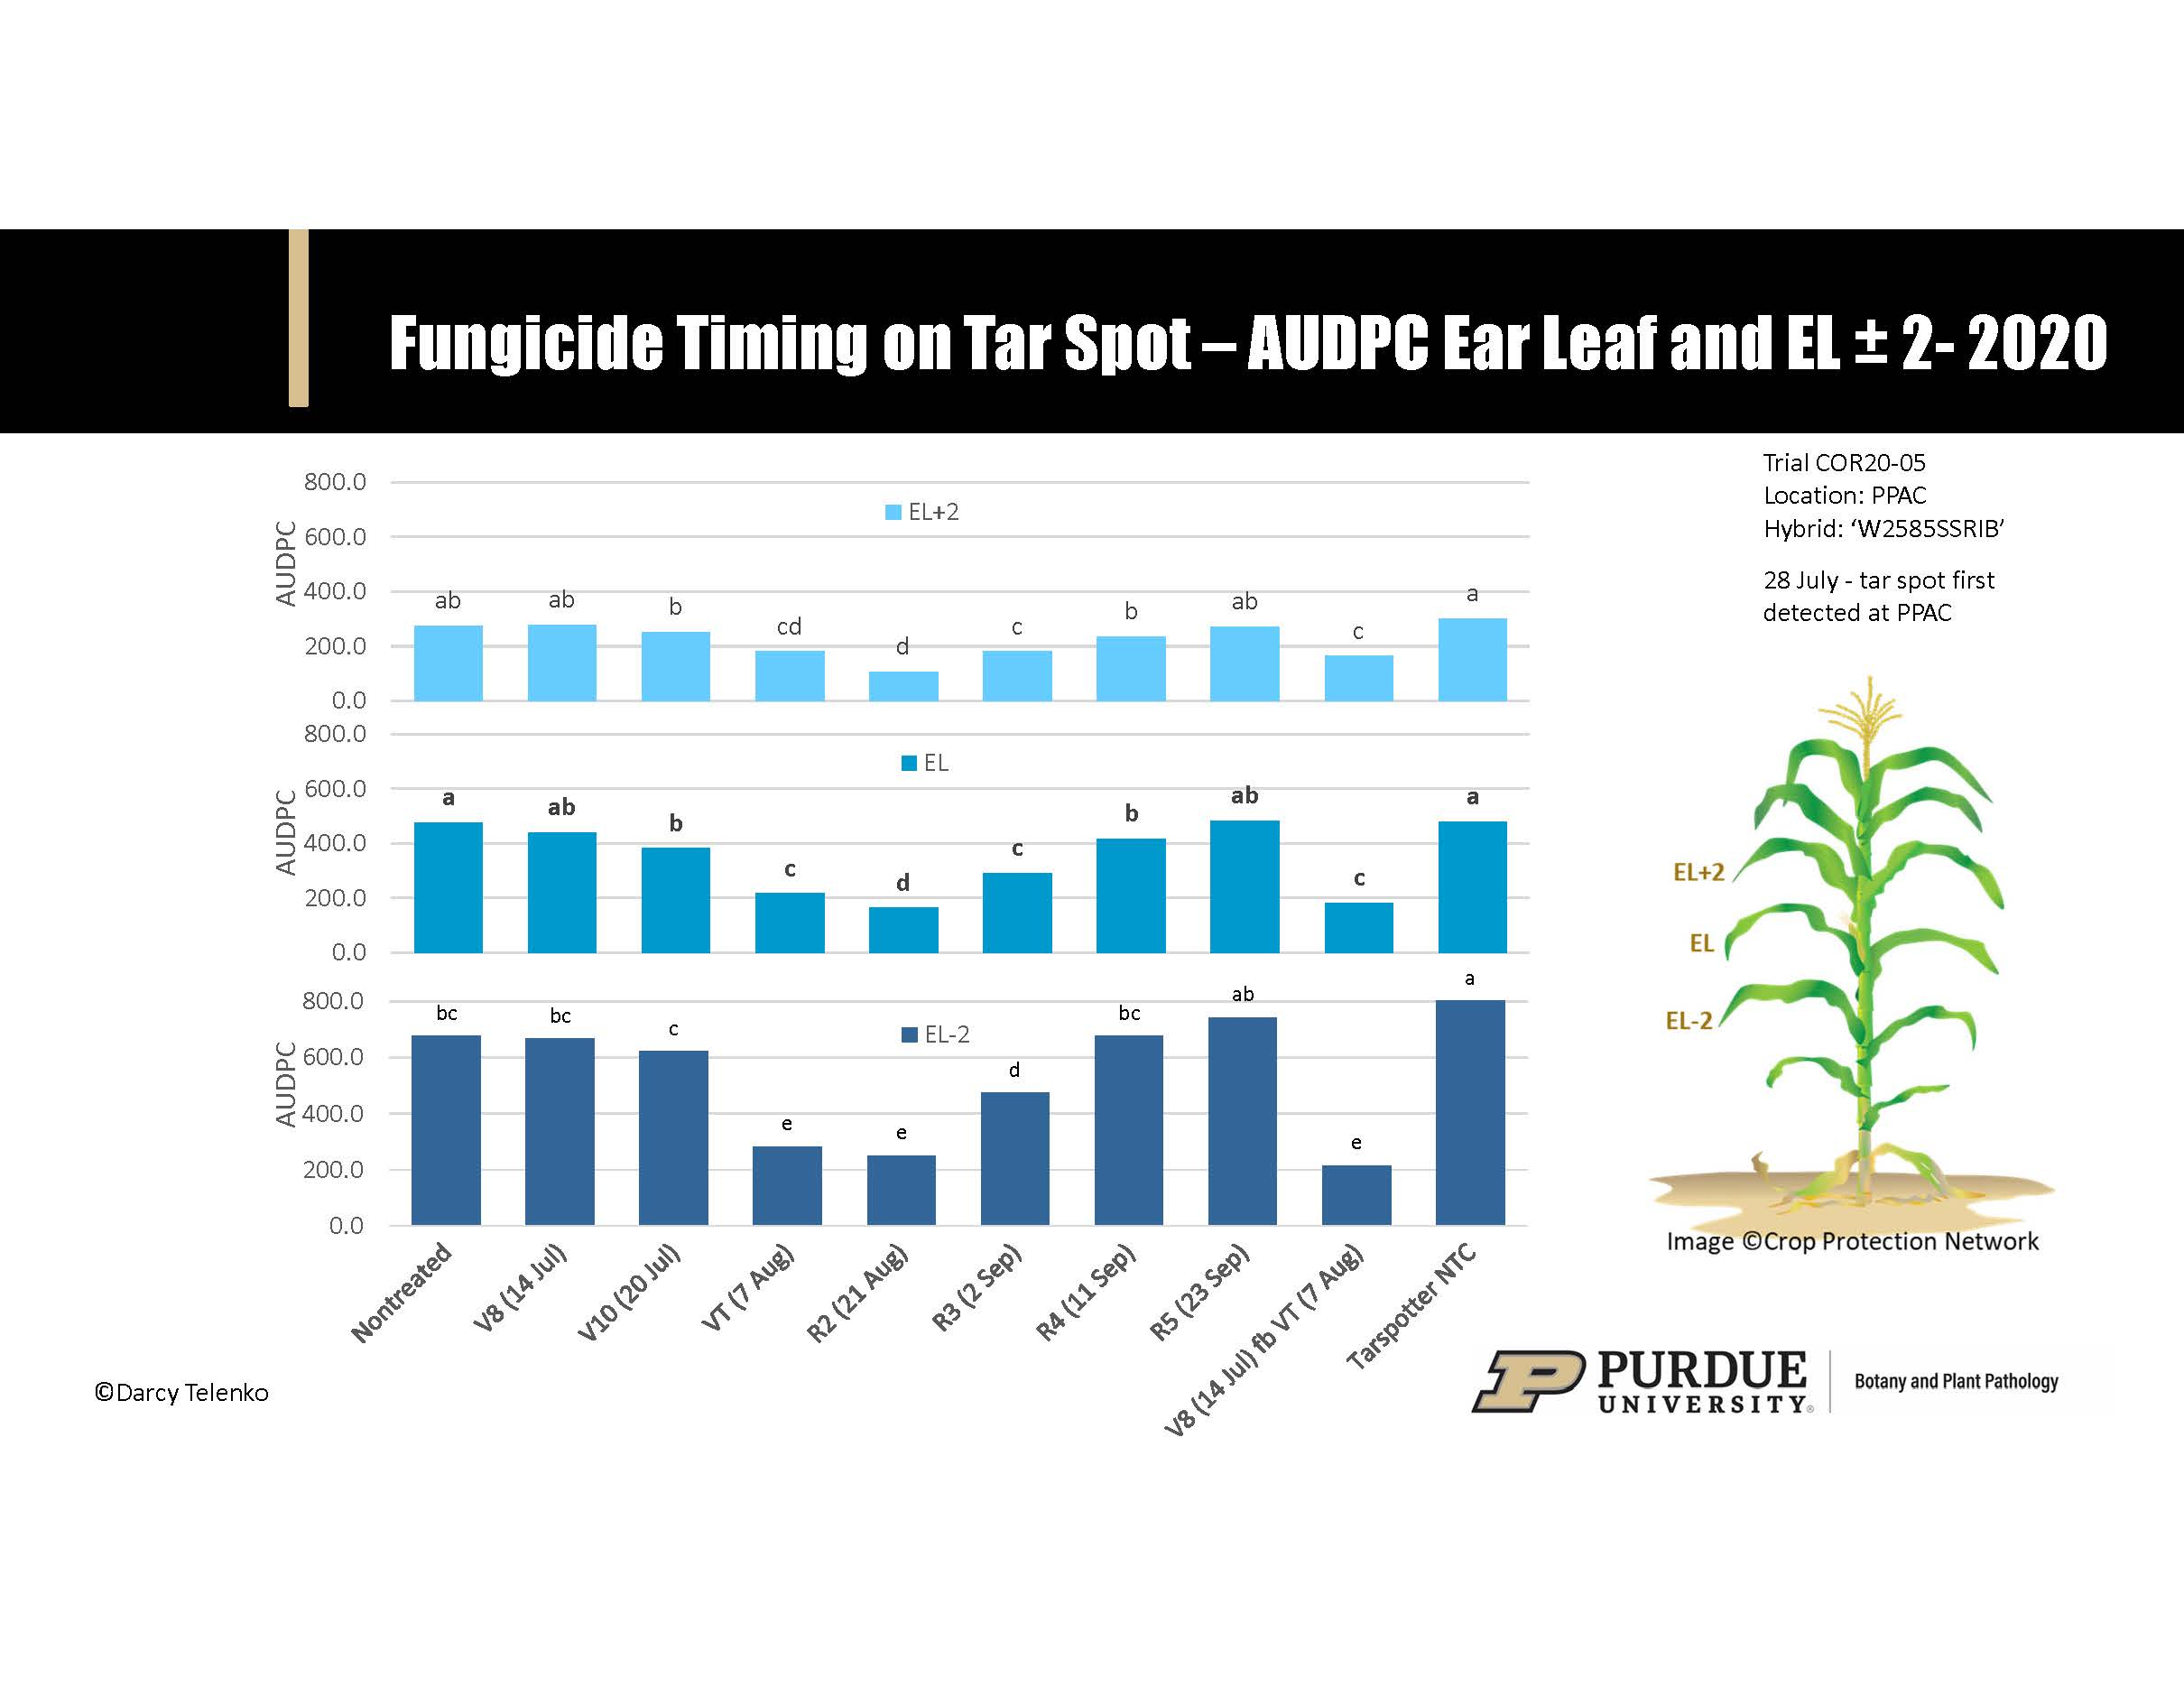 Figure 3. Effect of fungicide timing on the development of tar spot on the ear leaf (EL) and the two leaves above and below the ear leaf (EL±2). Timing treatments included V8, V10, tassel/silk (VT/R1), blister (R2), milk (R3), dough (R4), dent (R5), and a two-fungicide application program made at V8 followed by VT. AUDPC = by area under disease progress curve. Tar spot first detected in trial on 28 July.